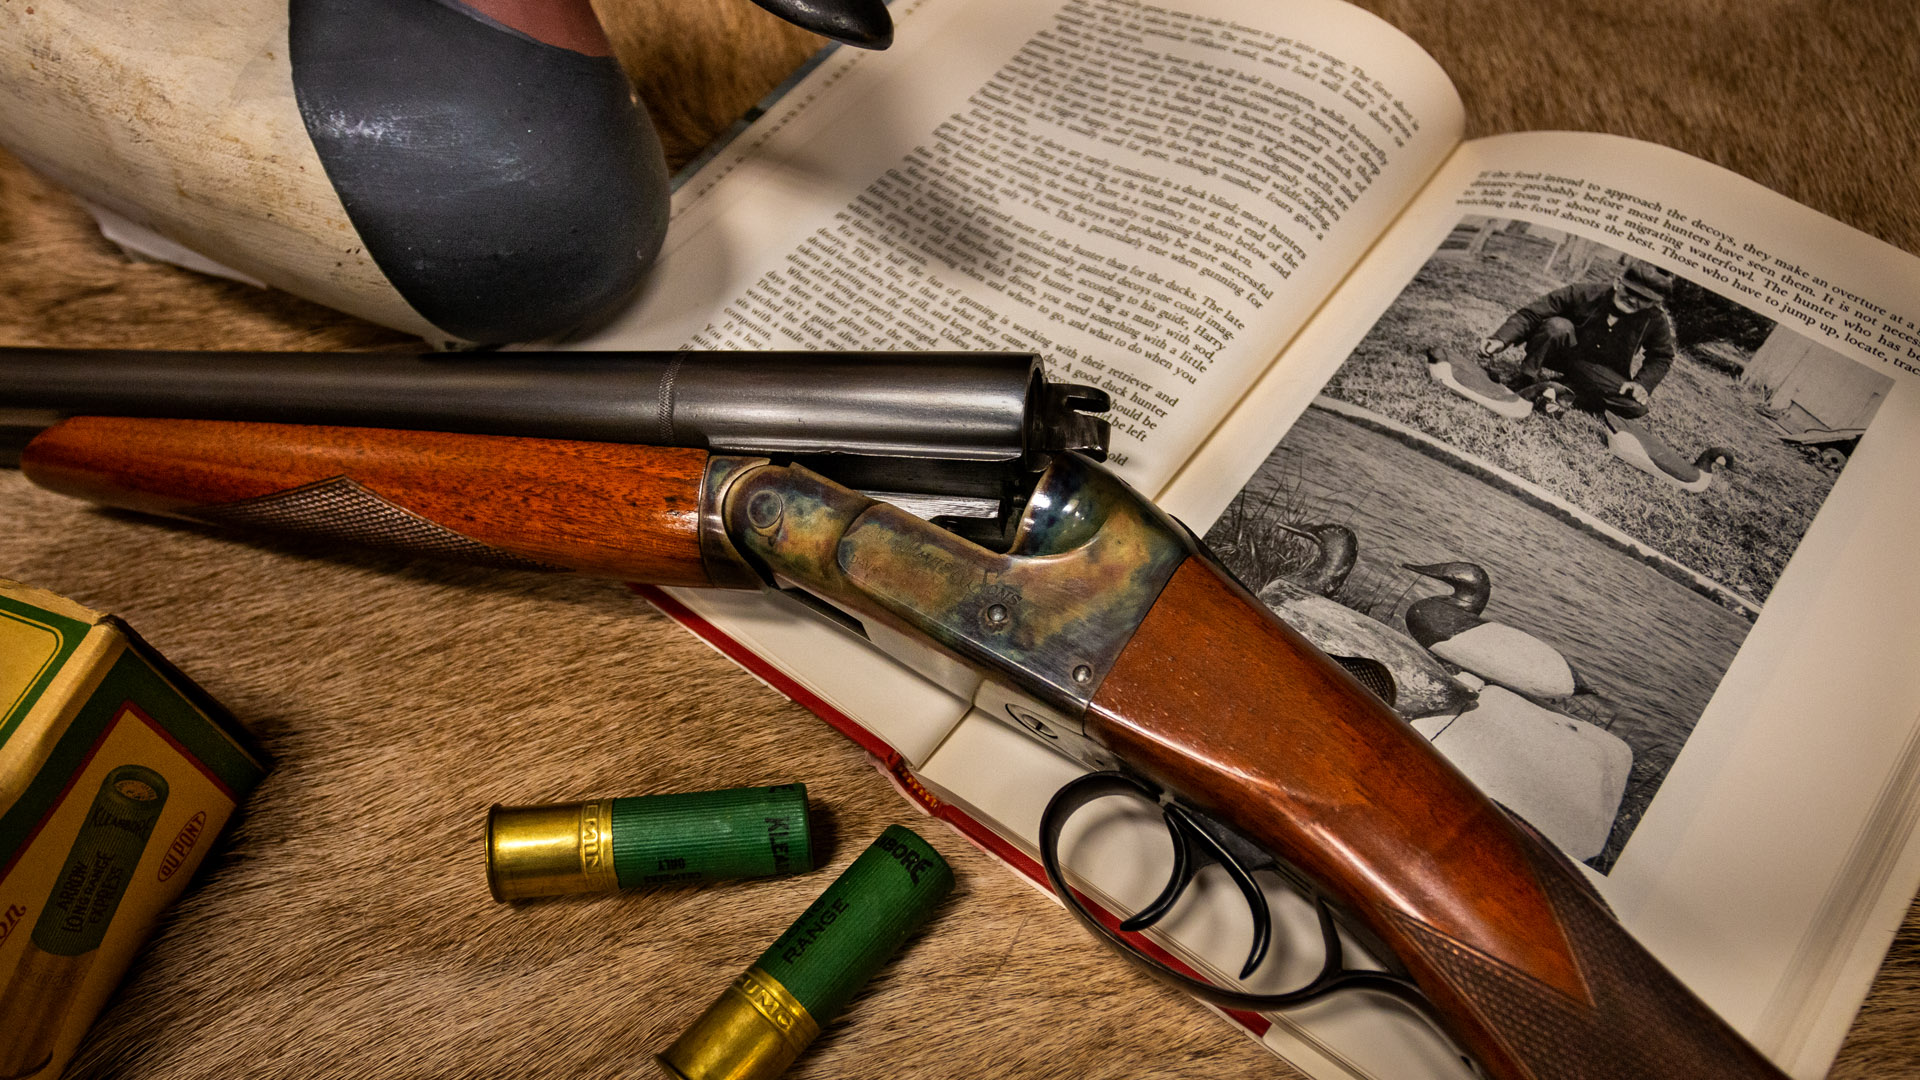 Photo of N.R. Davis 12 gauge shotgun, restored by Doug Turnbull in the mid 1990s